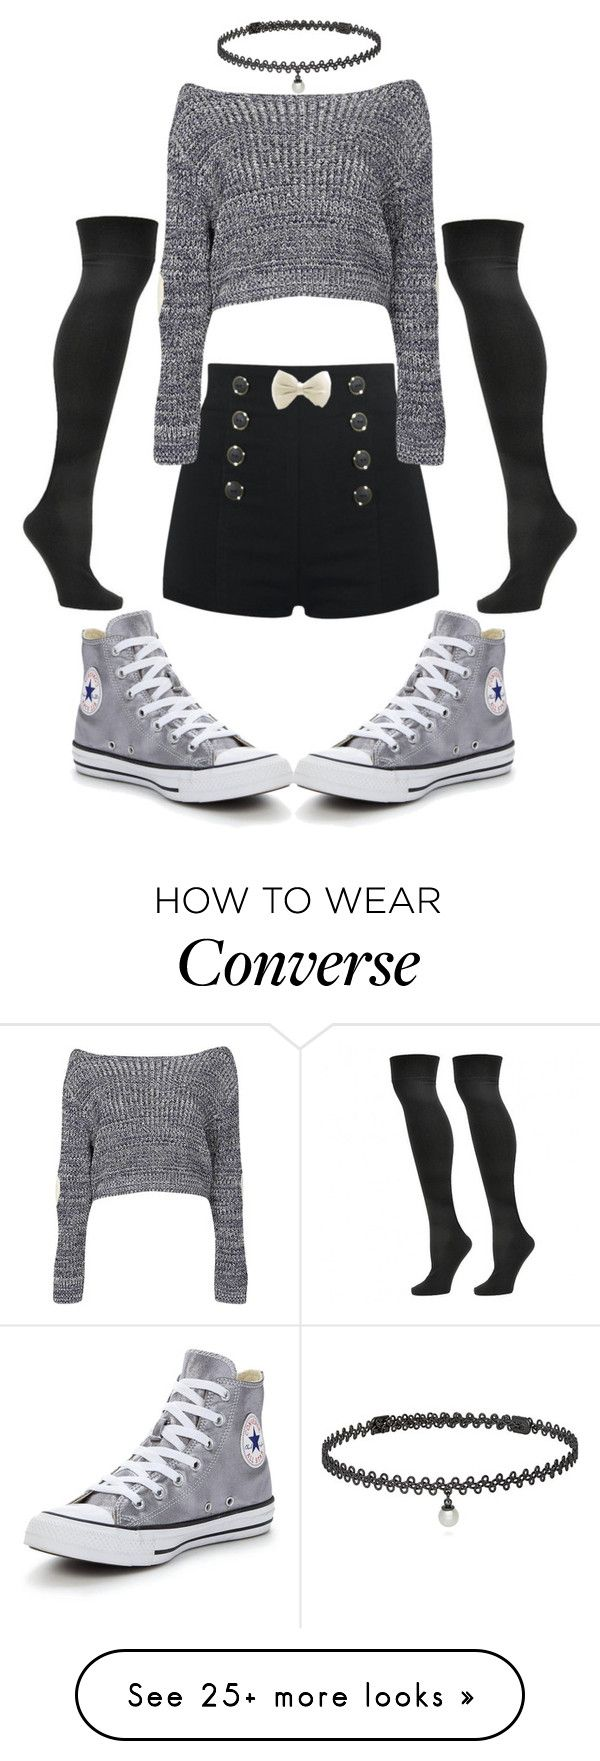 """Untitled #30"" by miragrace on Polyvore featuring Steve Madden, BERRICLE, Boohoo and Converse"